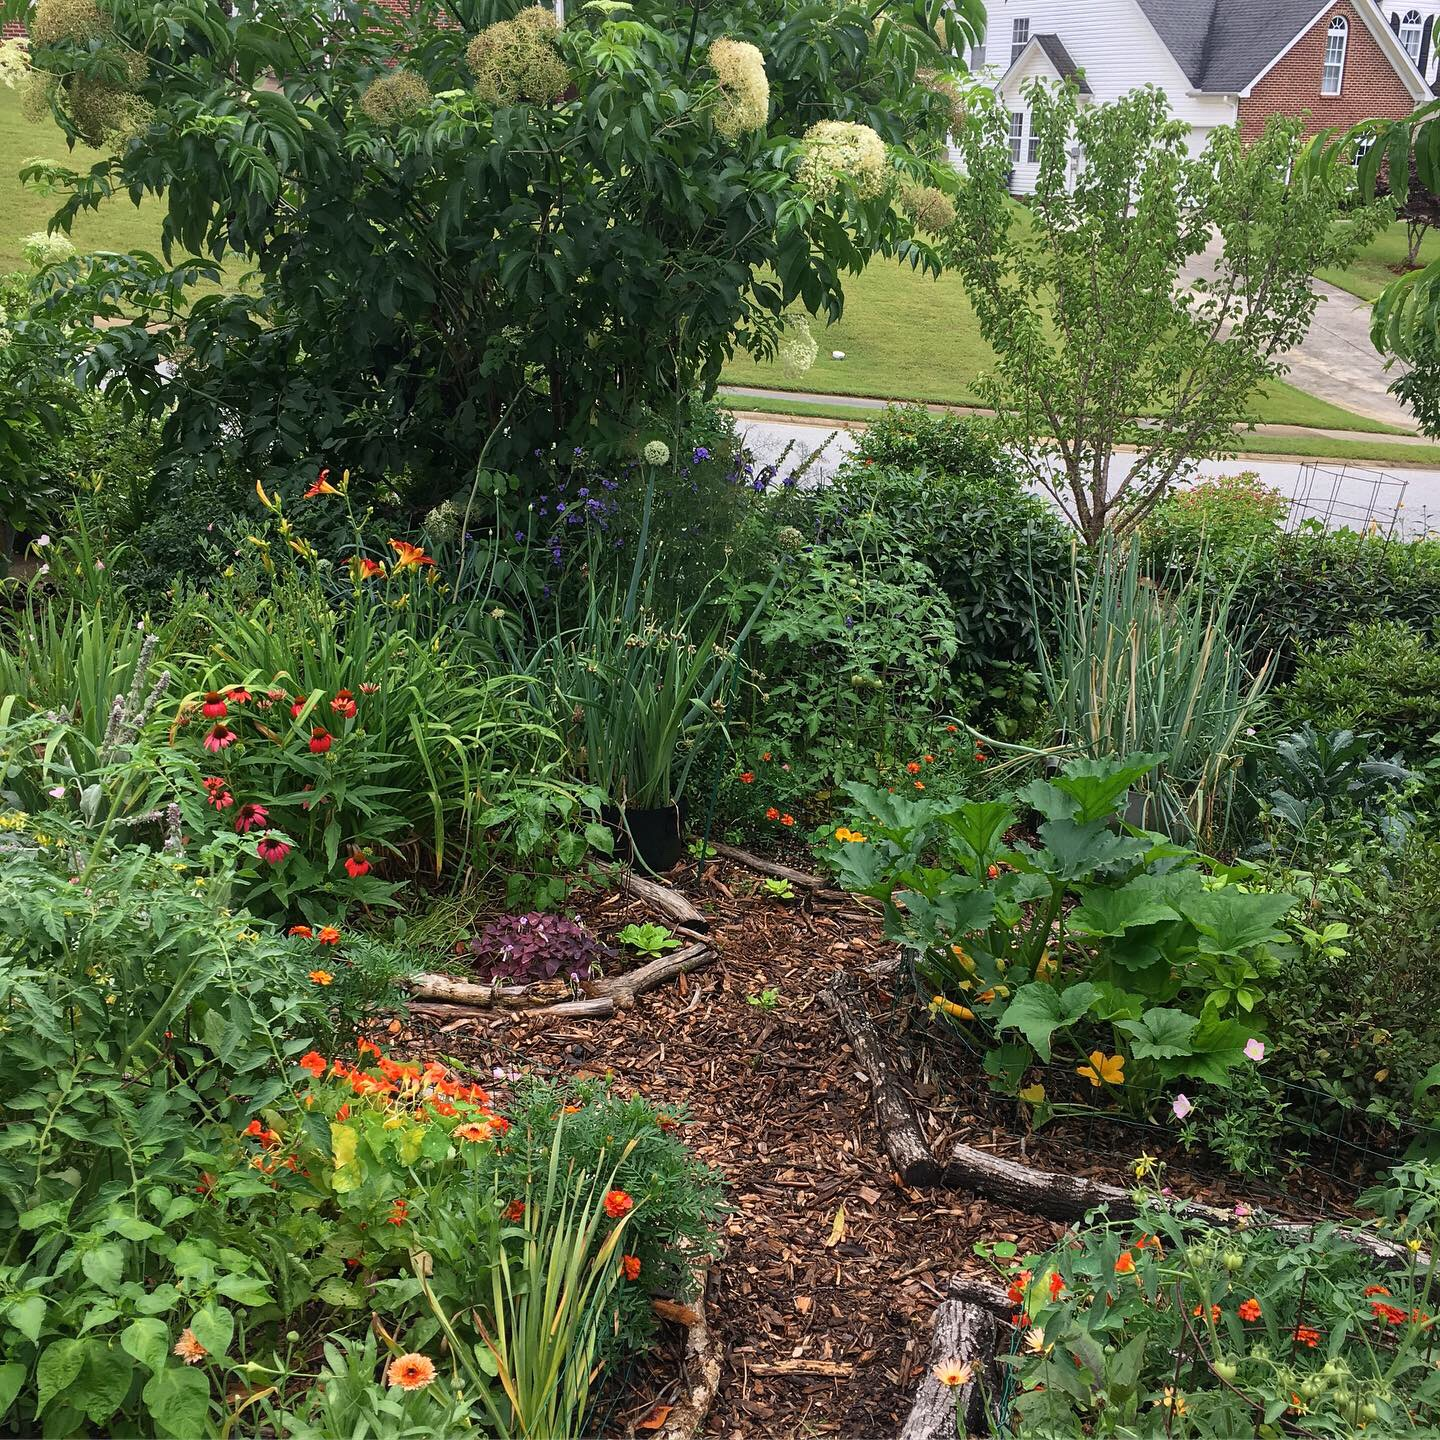 We think it's time to rethink the American yard. Your yard can provide safe habitat for countless pollinators, produce organic food for you, and sequester huge amounts of carbon. Or you can just grow grass using synthetic chemicals/pollutants.